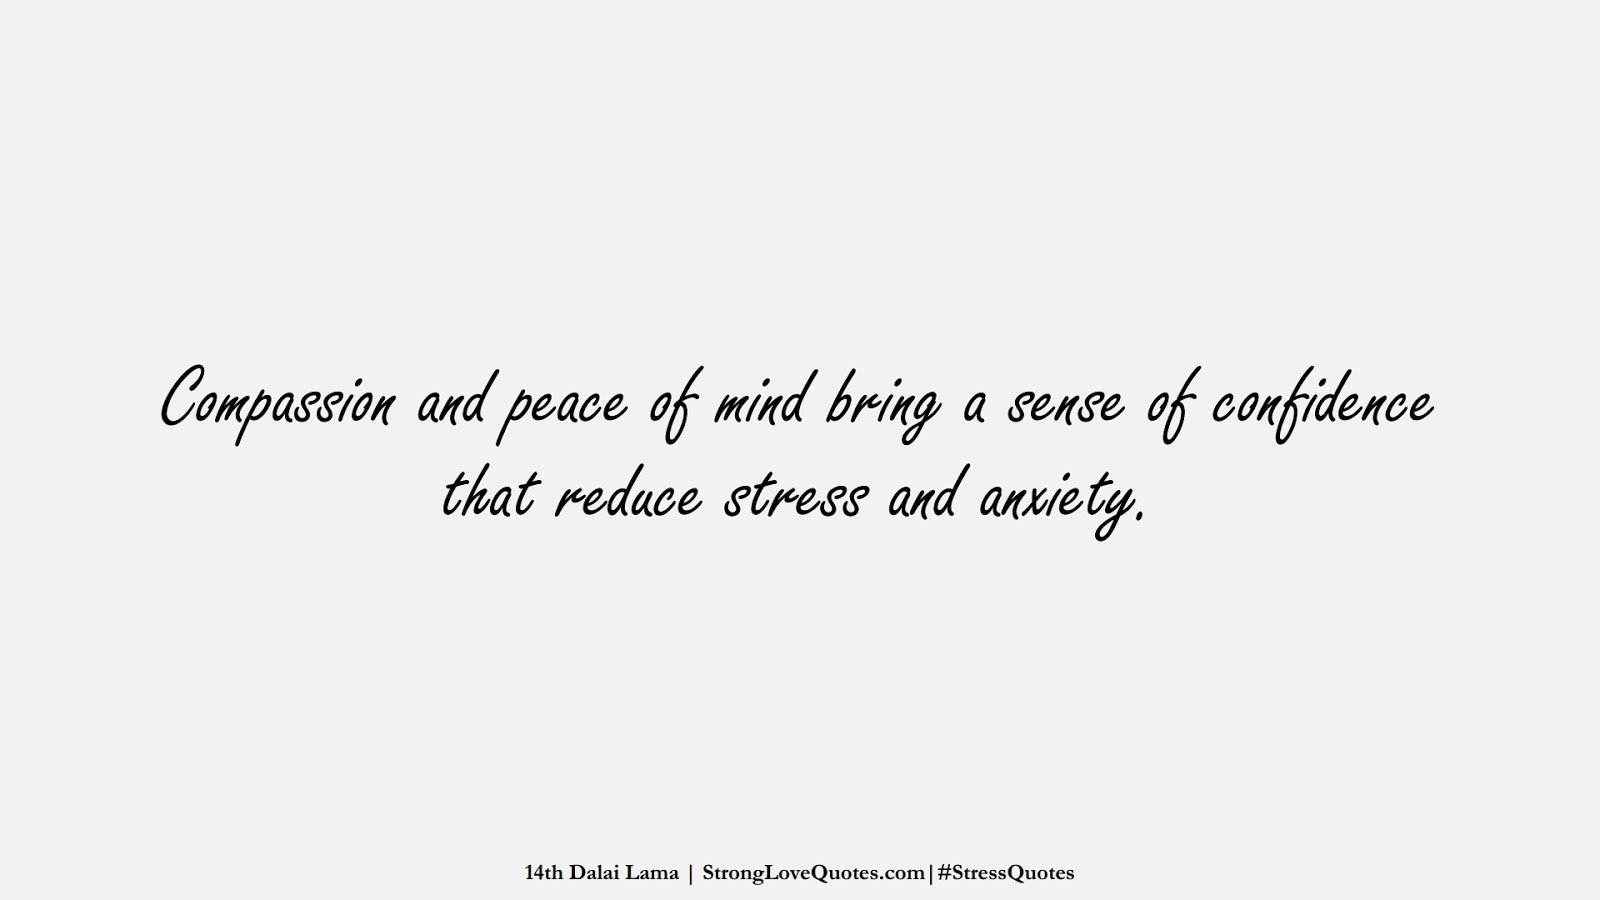 Compassion and peace of mind bring a sense of confidence that reduce stress and anxiety. (14th Dalai Lama);  #StressQuotes